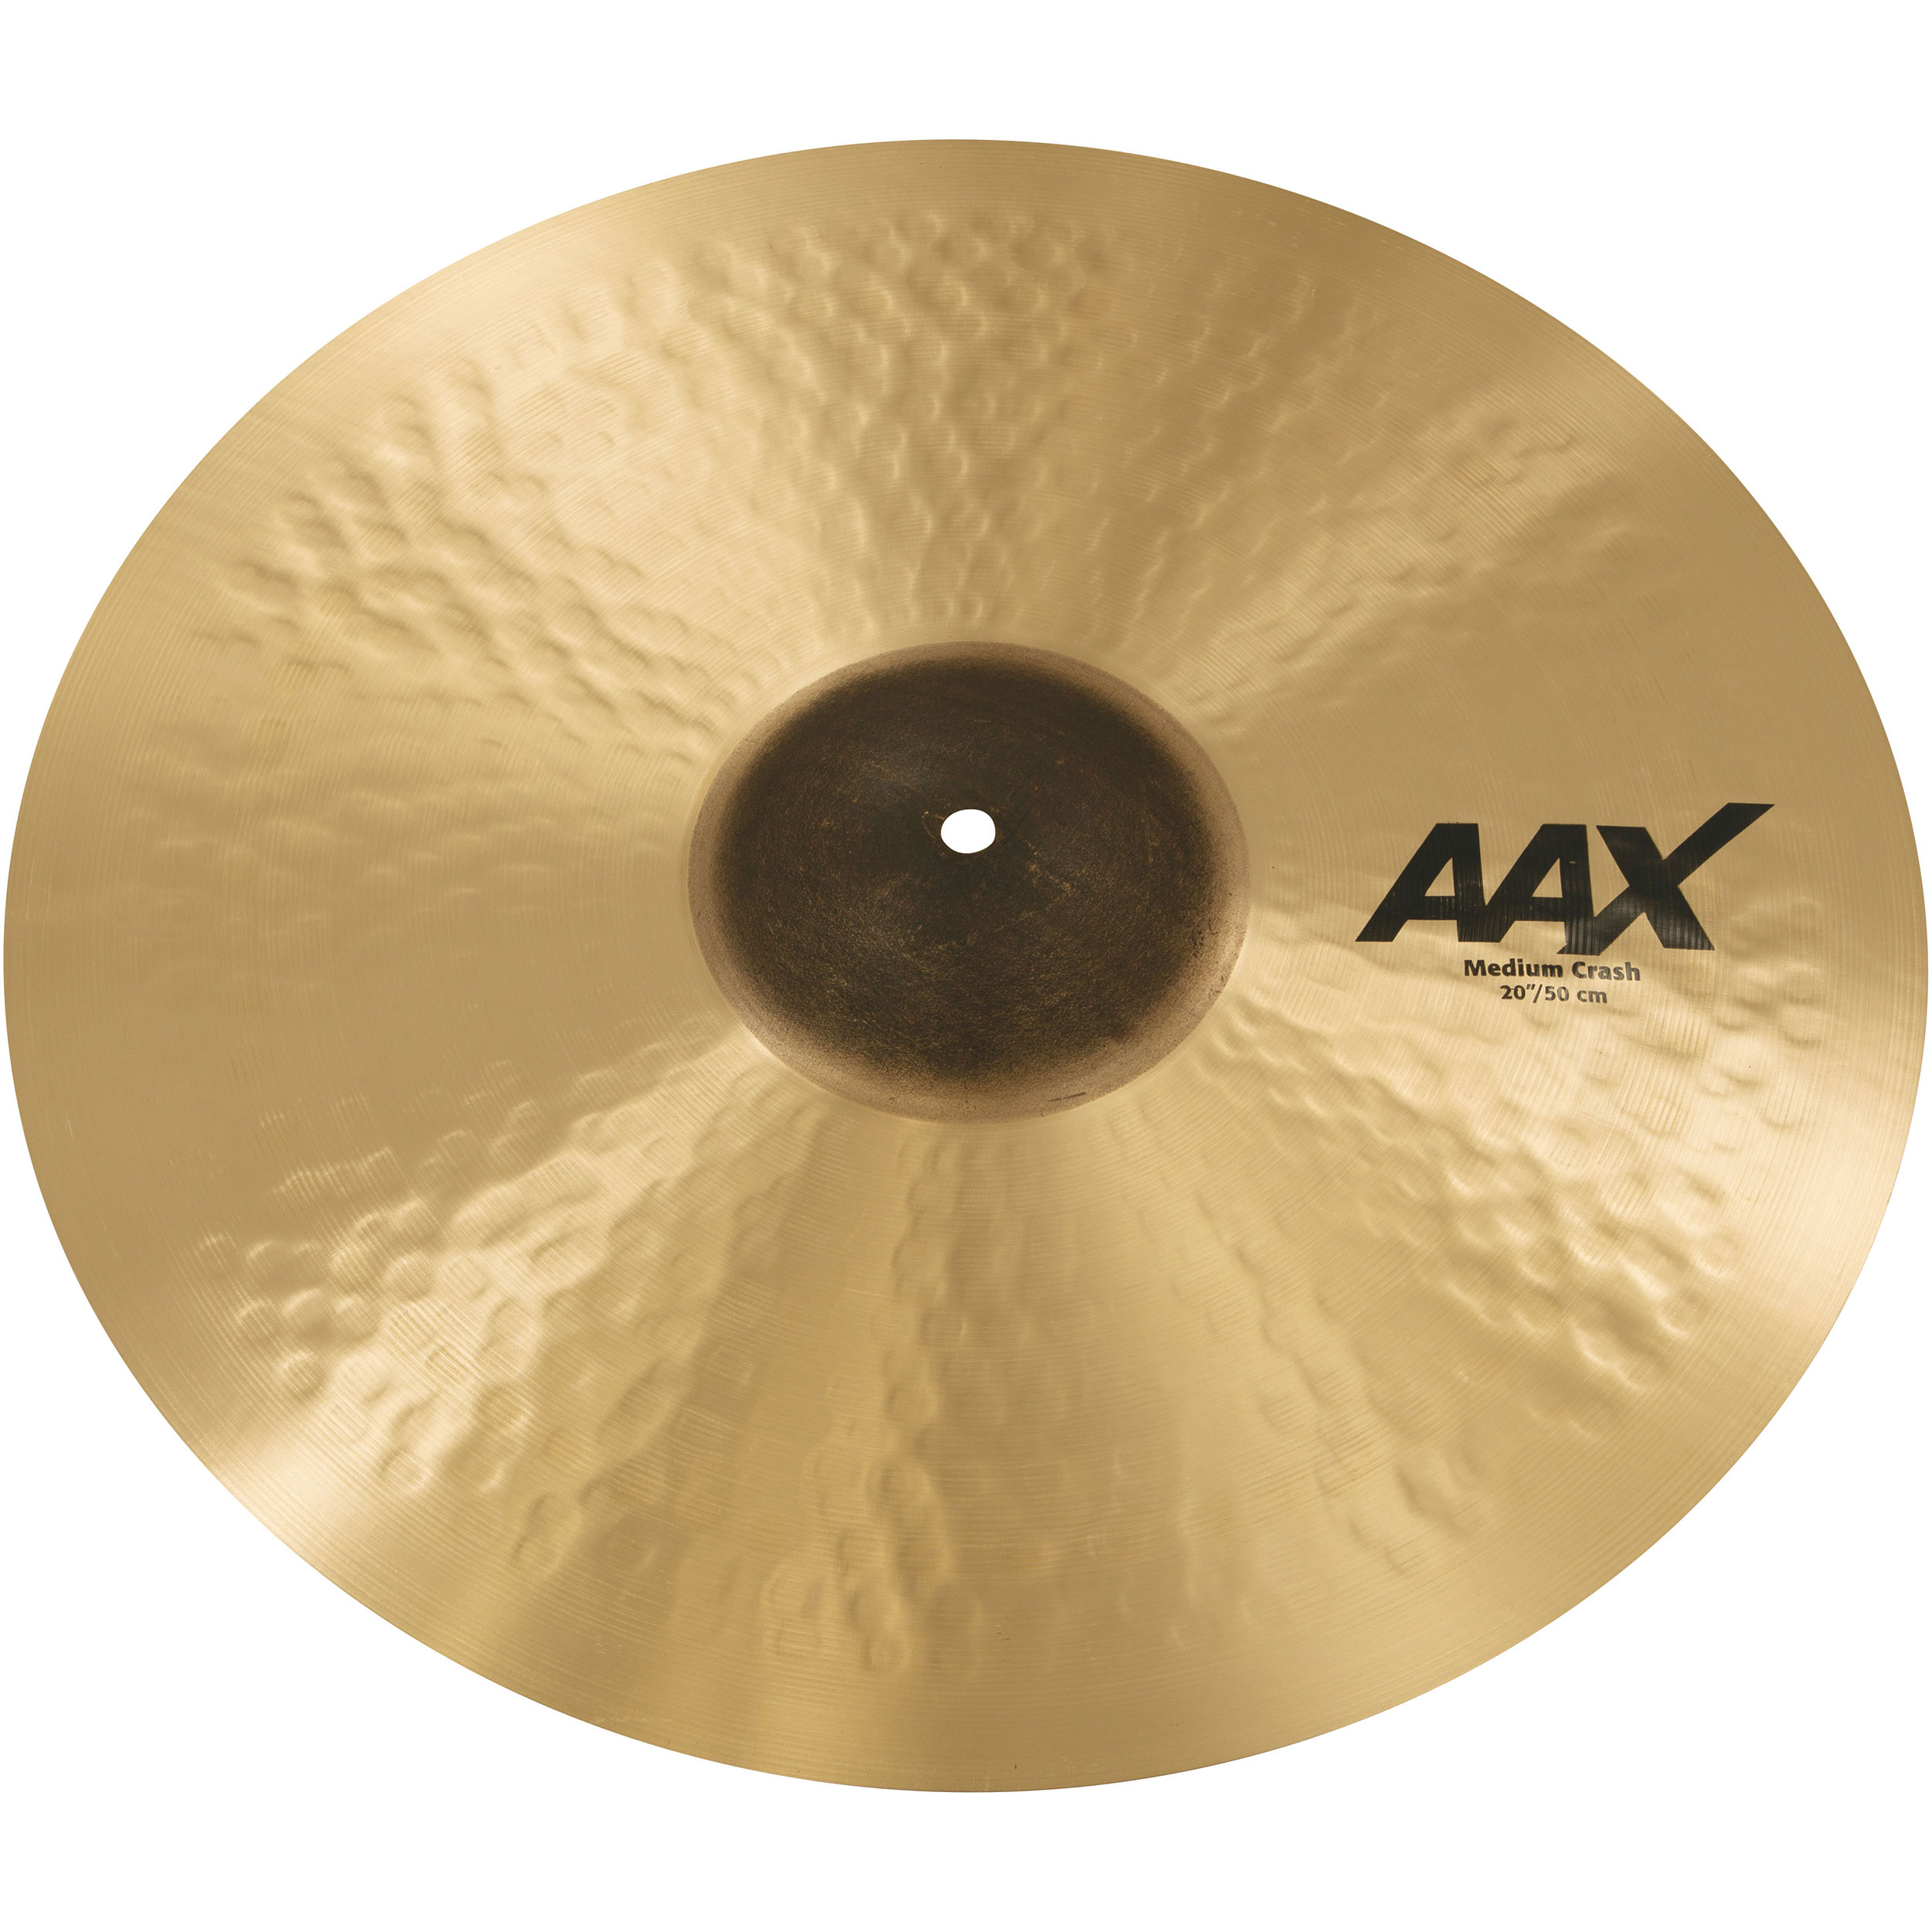 "Sabian 20"" AAX Medium Crash Cymbal"